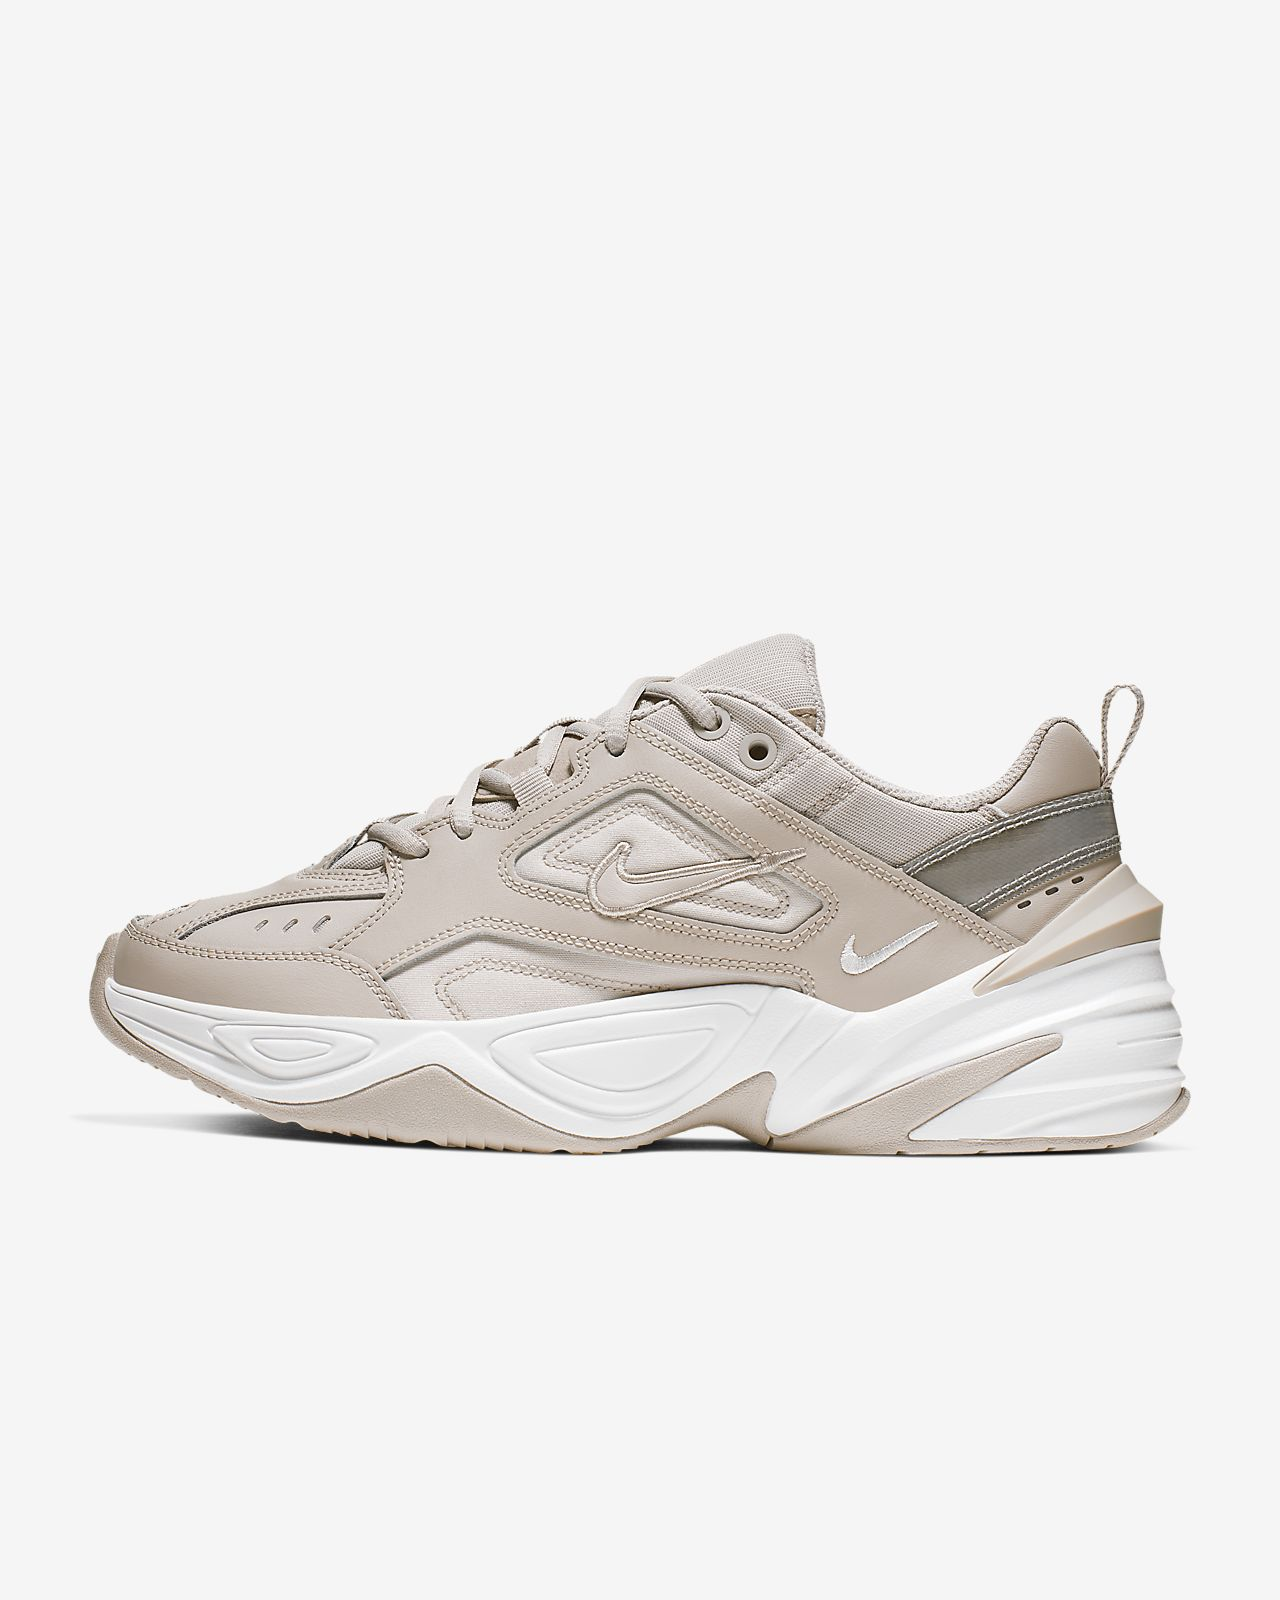 lower price with 7545c 8c243 Low Resolution Nike M2K Tekno Shoe Nike M2K Tekno Shoe